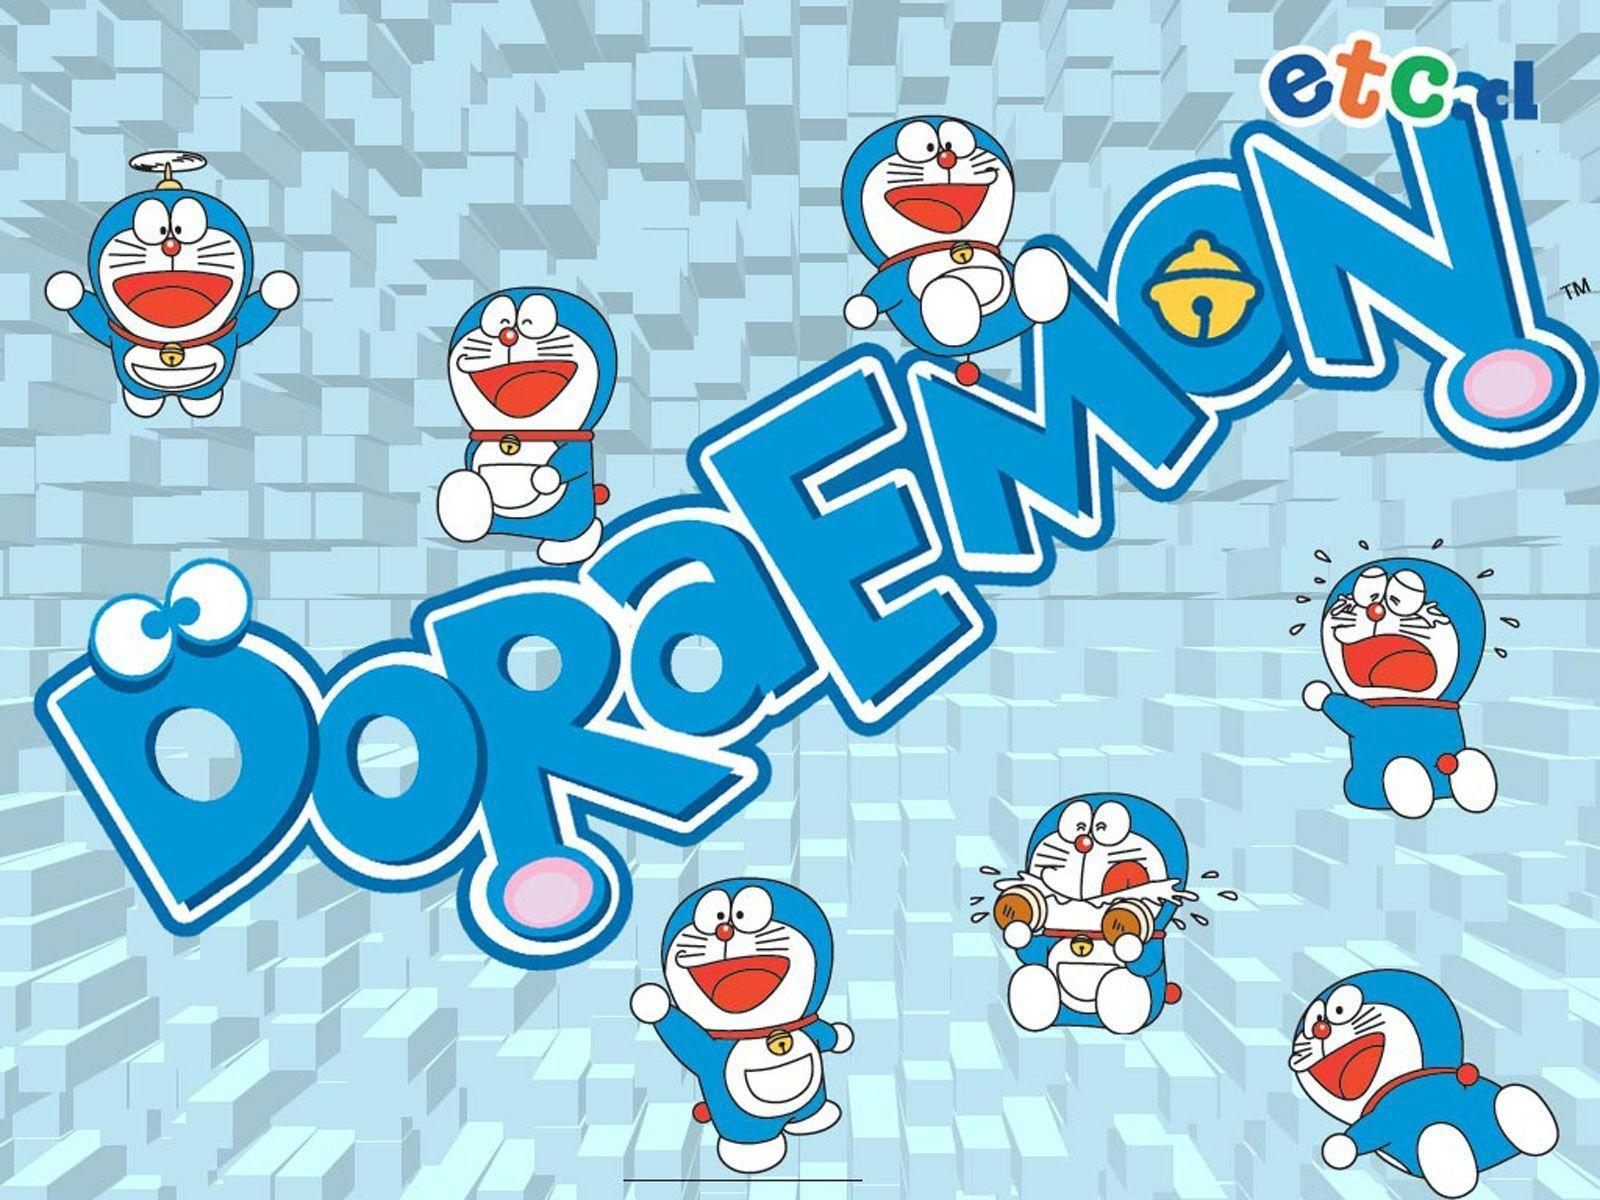 doraemon wallpaper for ipad - Free Download Wallpaper Desktop ...